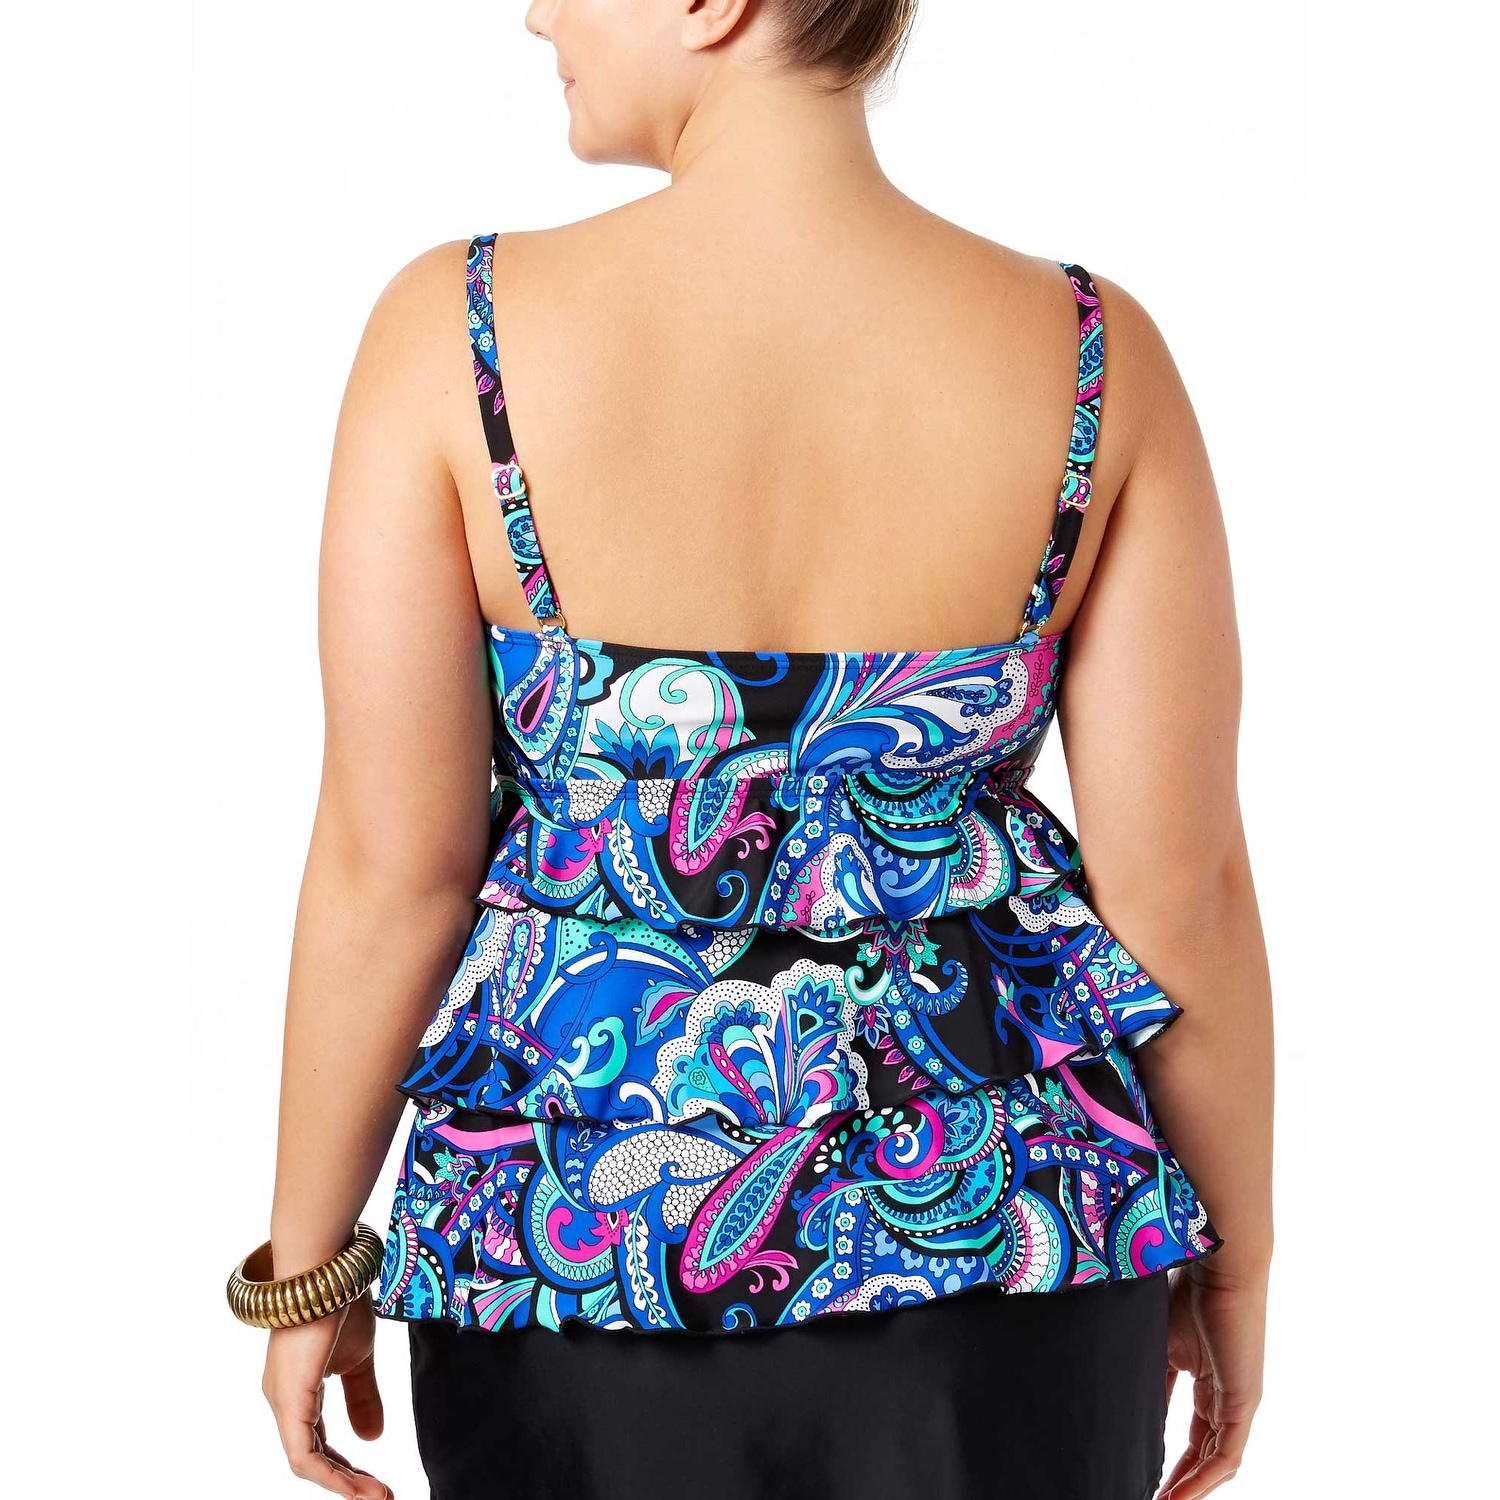 d17cfa3815 Shop Island Escape Womens Plus Size Mood In Madras Tankini Top 22W Black  Swimsuit - Free Shipping On Orders Over $45 - Overstock.com - 21007369